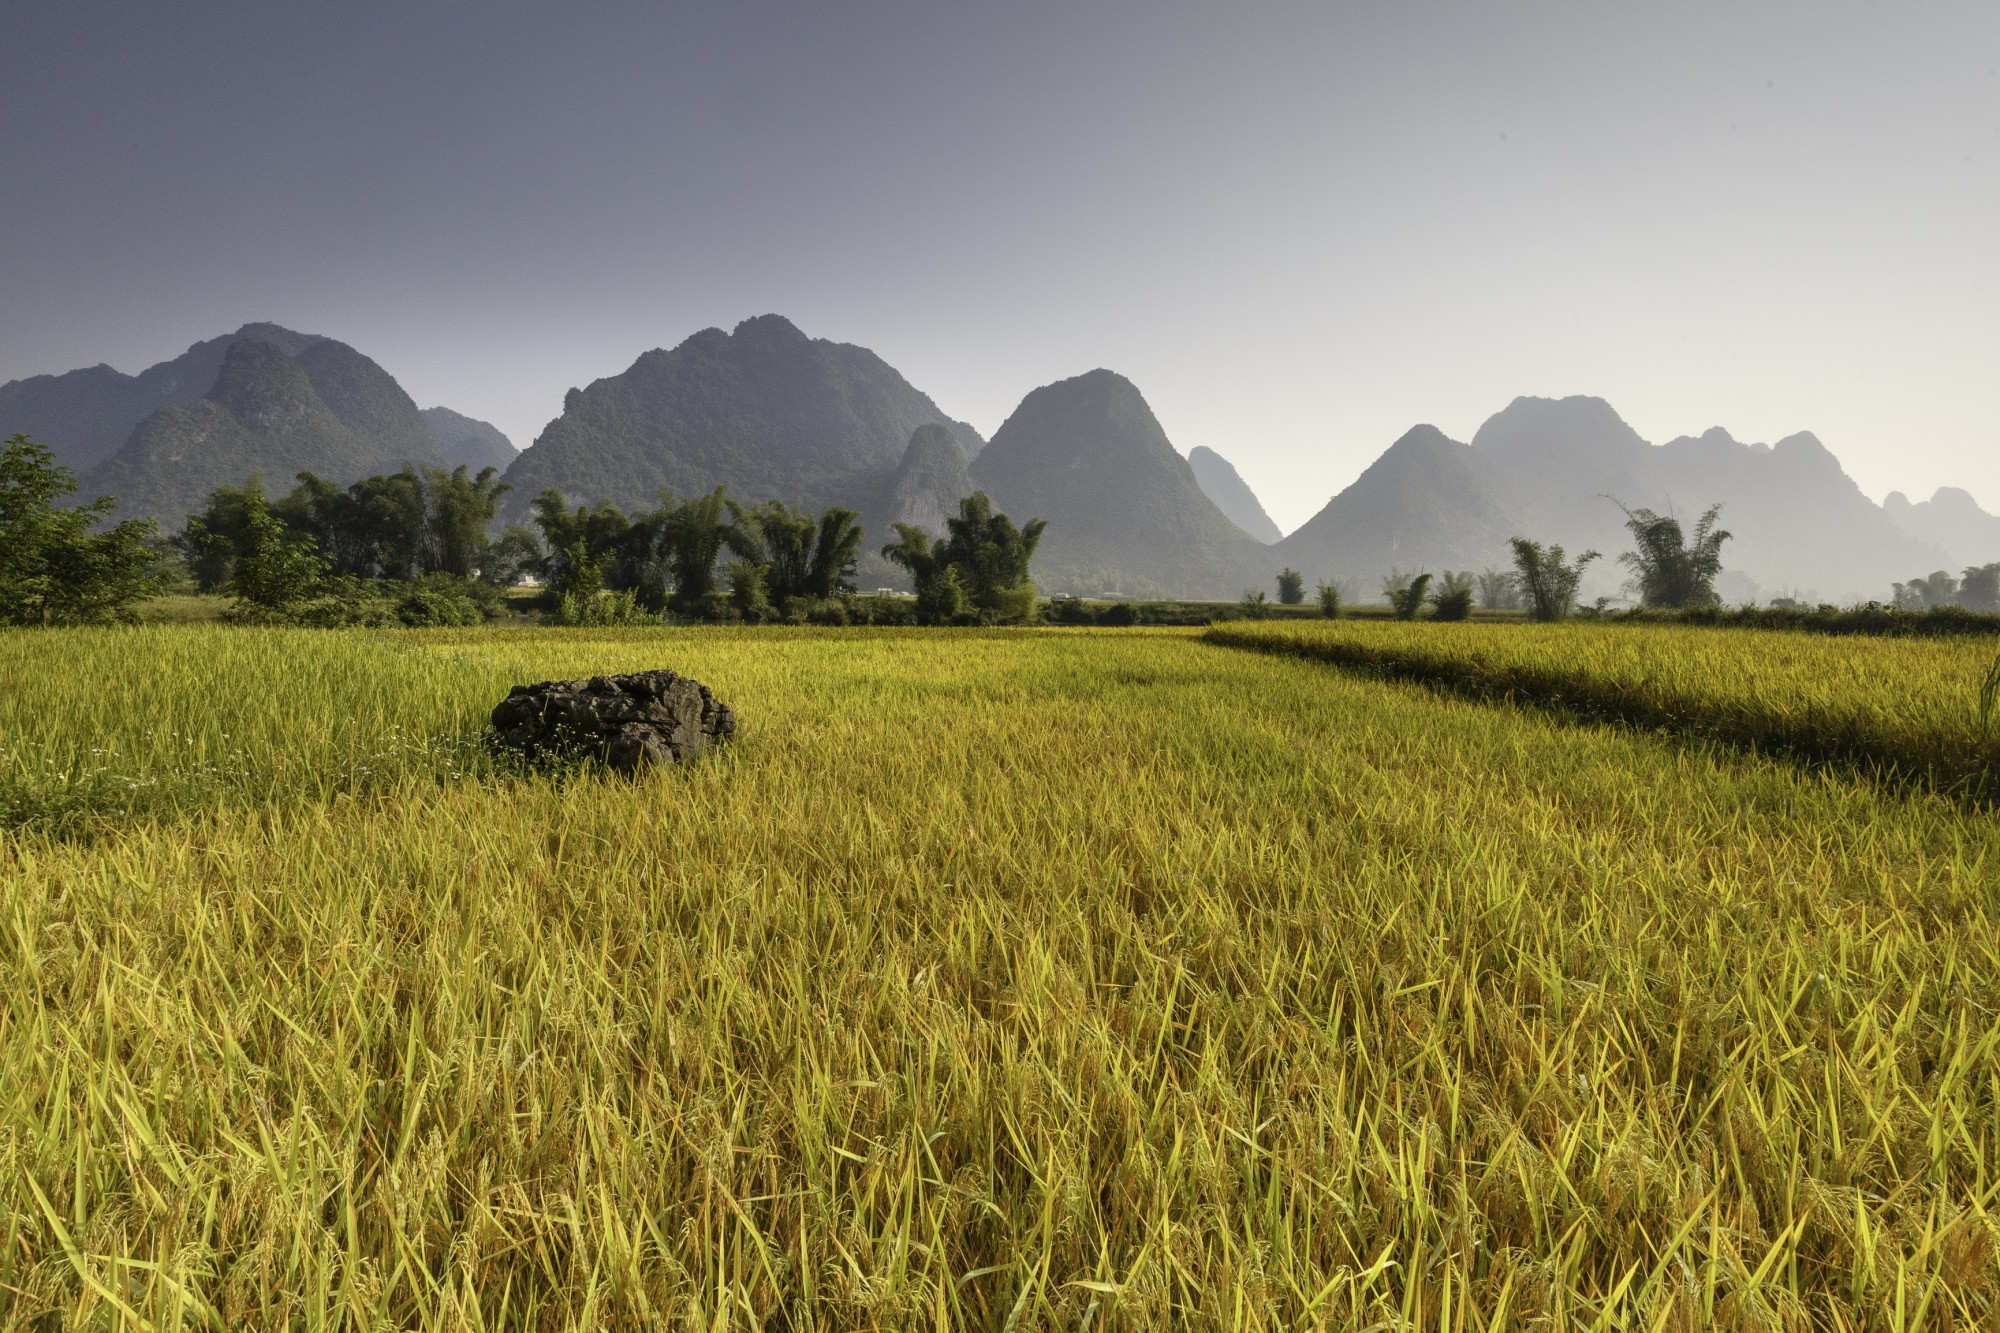 field and mountains in asia